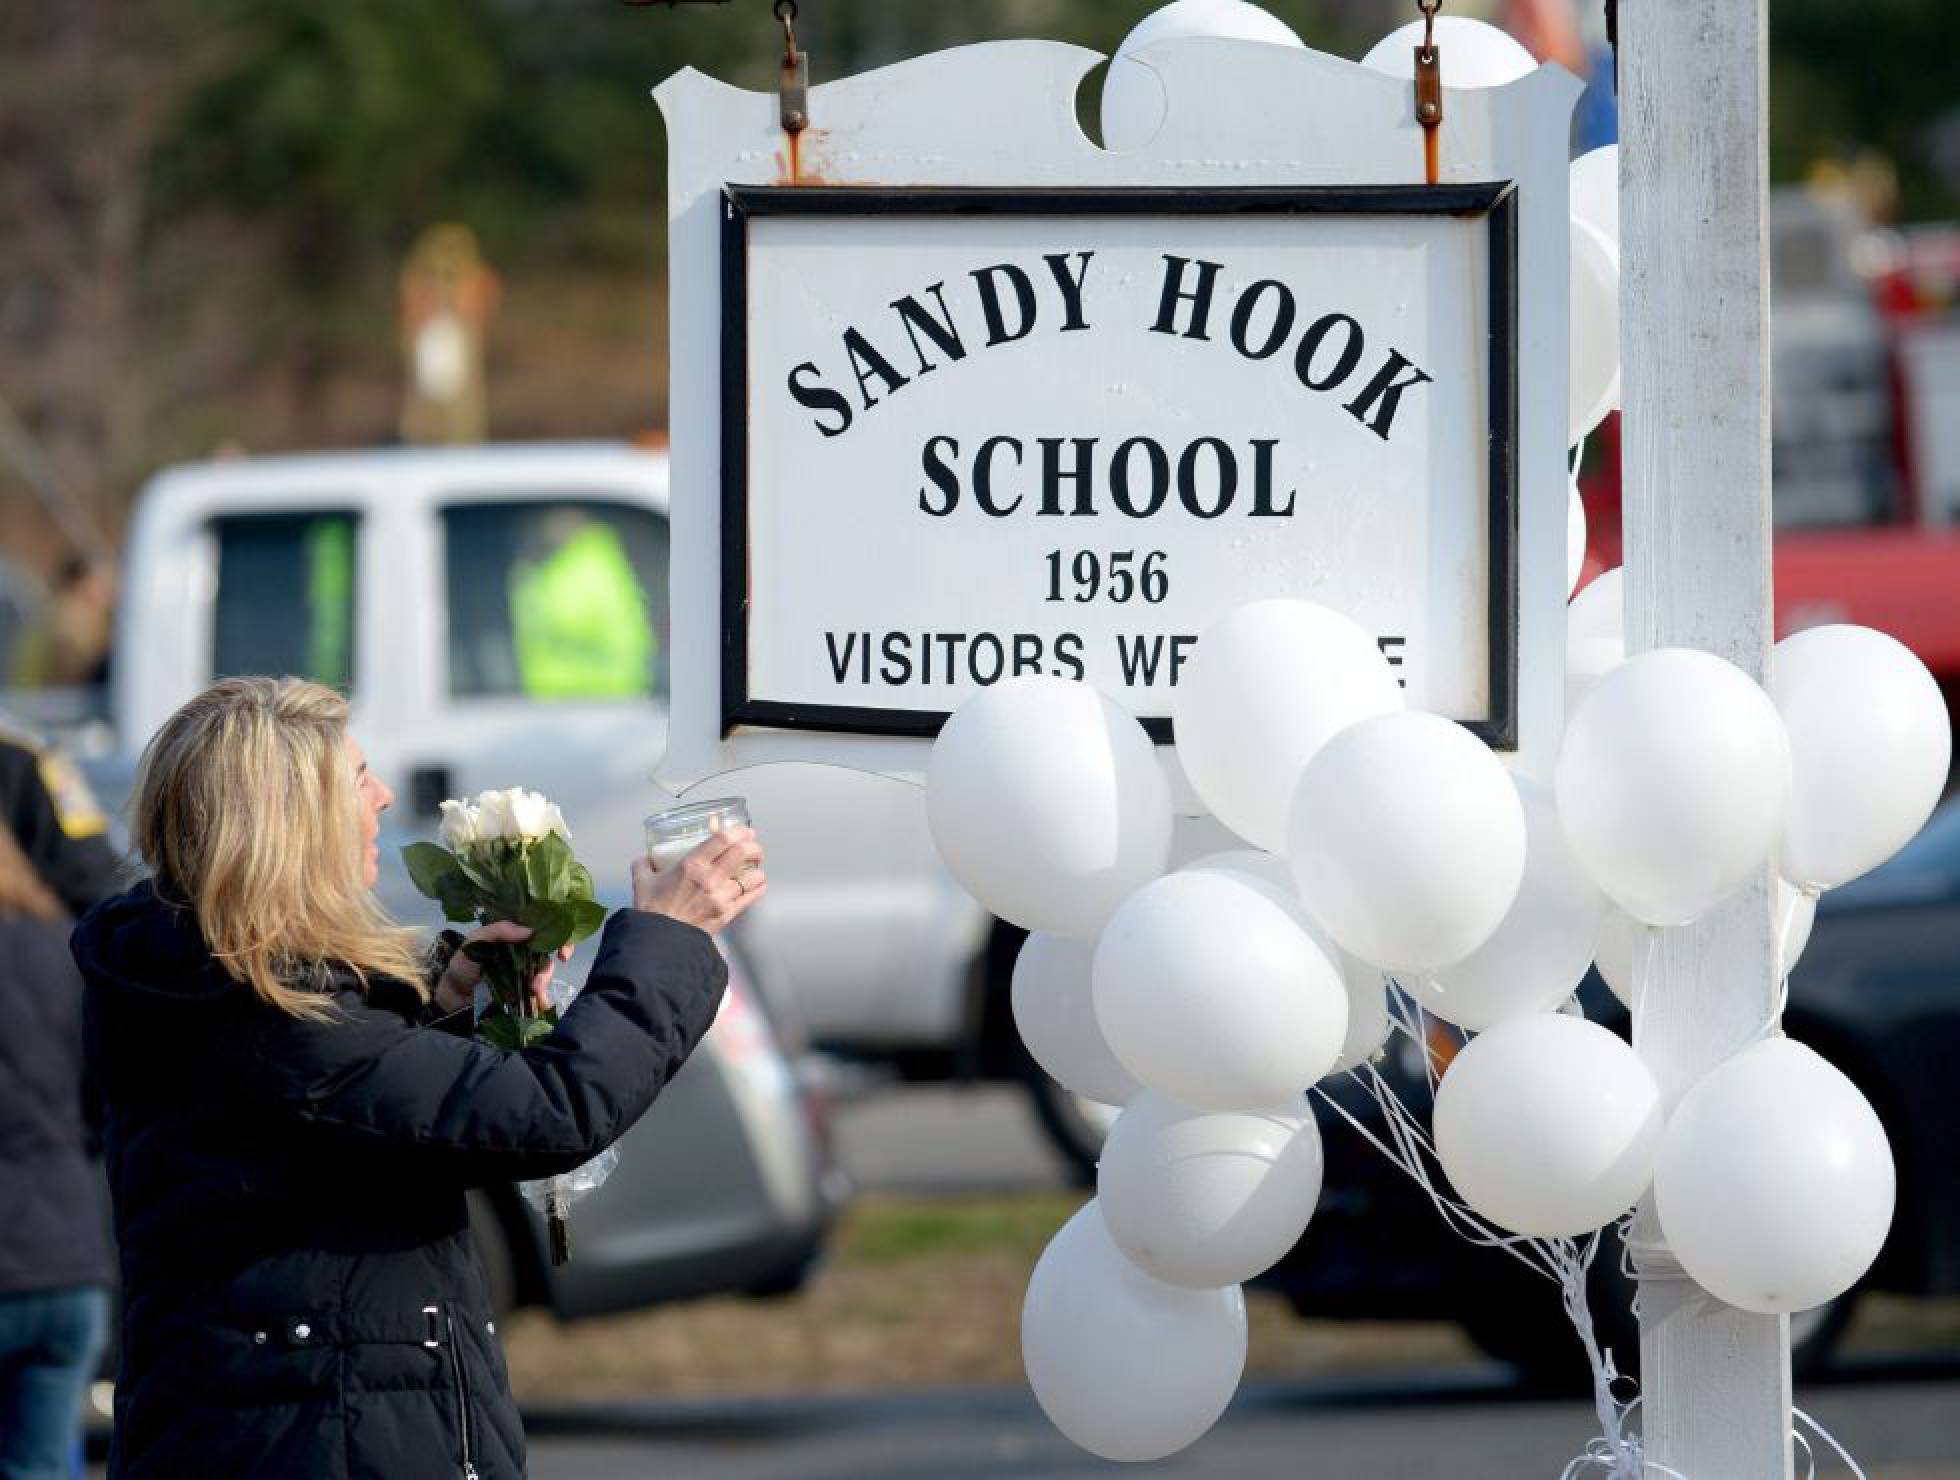 escuela Sandy Hook